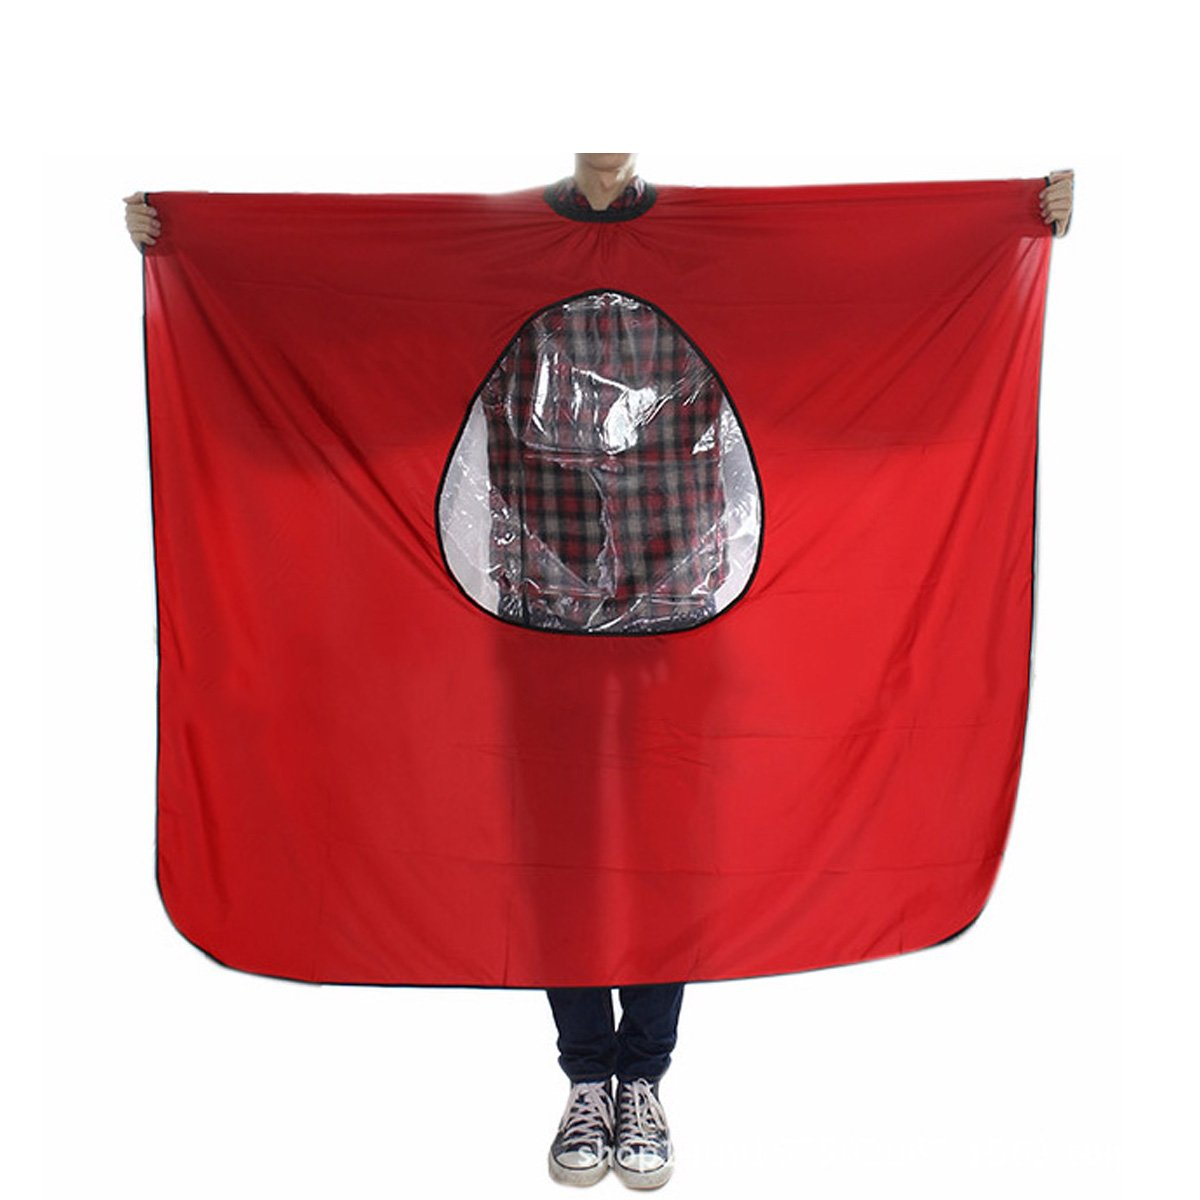 Elisona-Hair Salon Cutting Barber Shampoo Haircut Waterproof Cape Apron Cloth with a Transparent Viewing Window Red